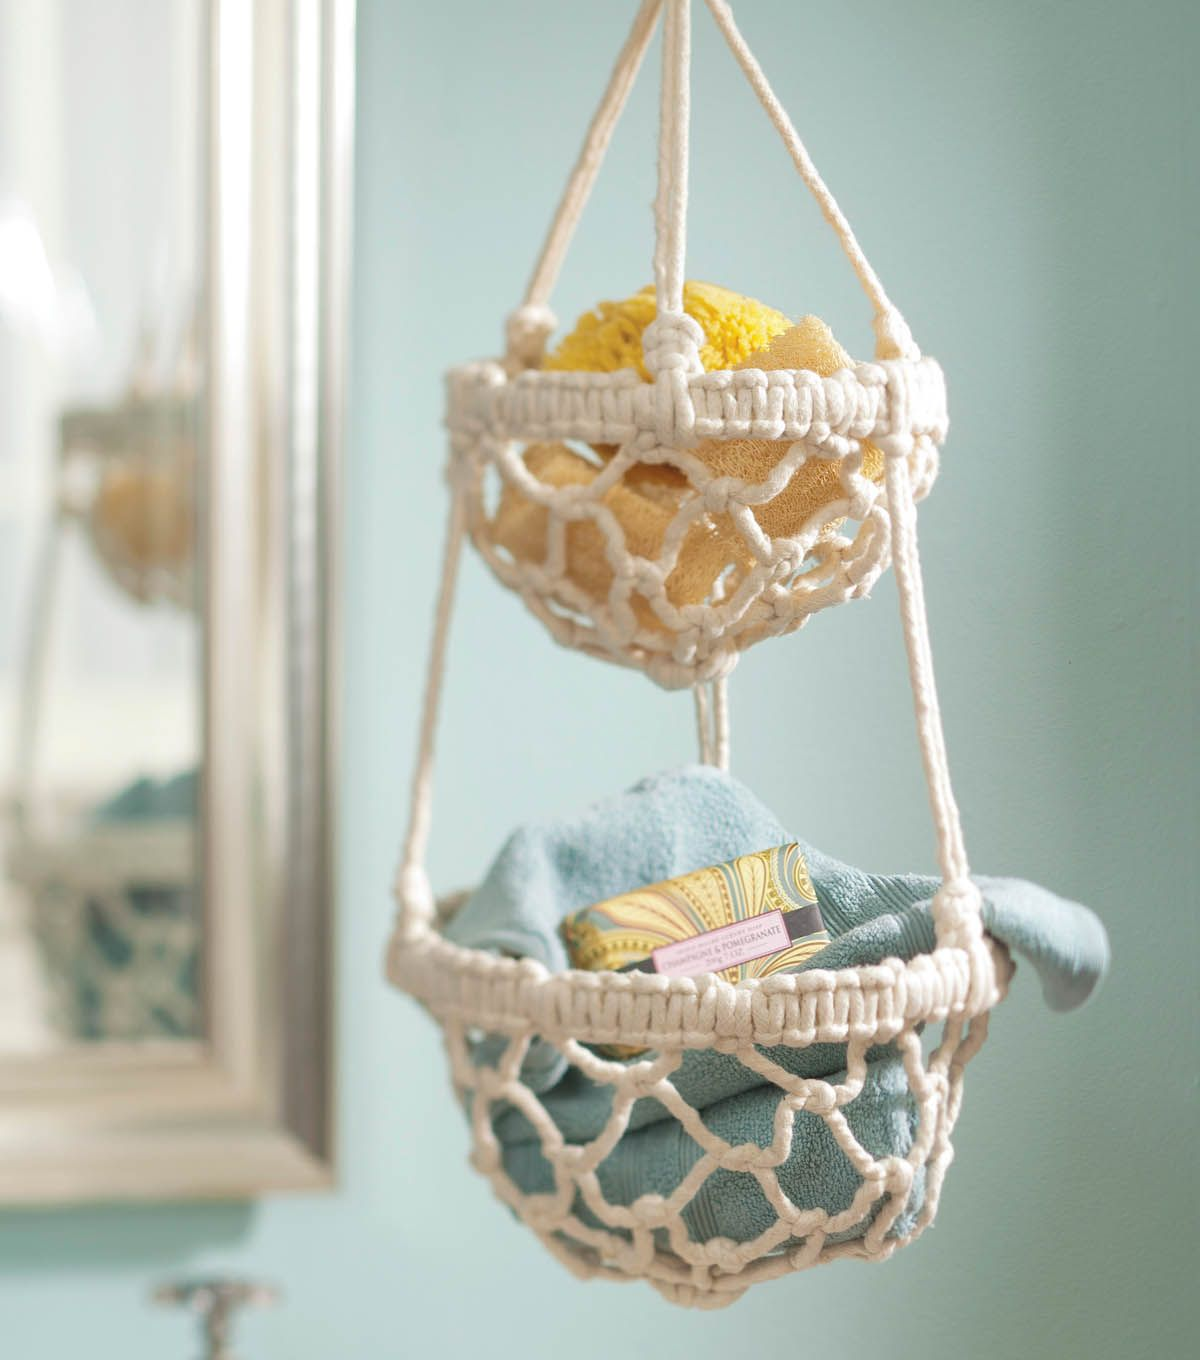 Top 10 Macrame Projects To Diy This Summer Diy Macrame Projects Mason Jar Diy Macrame